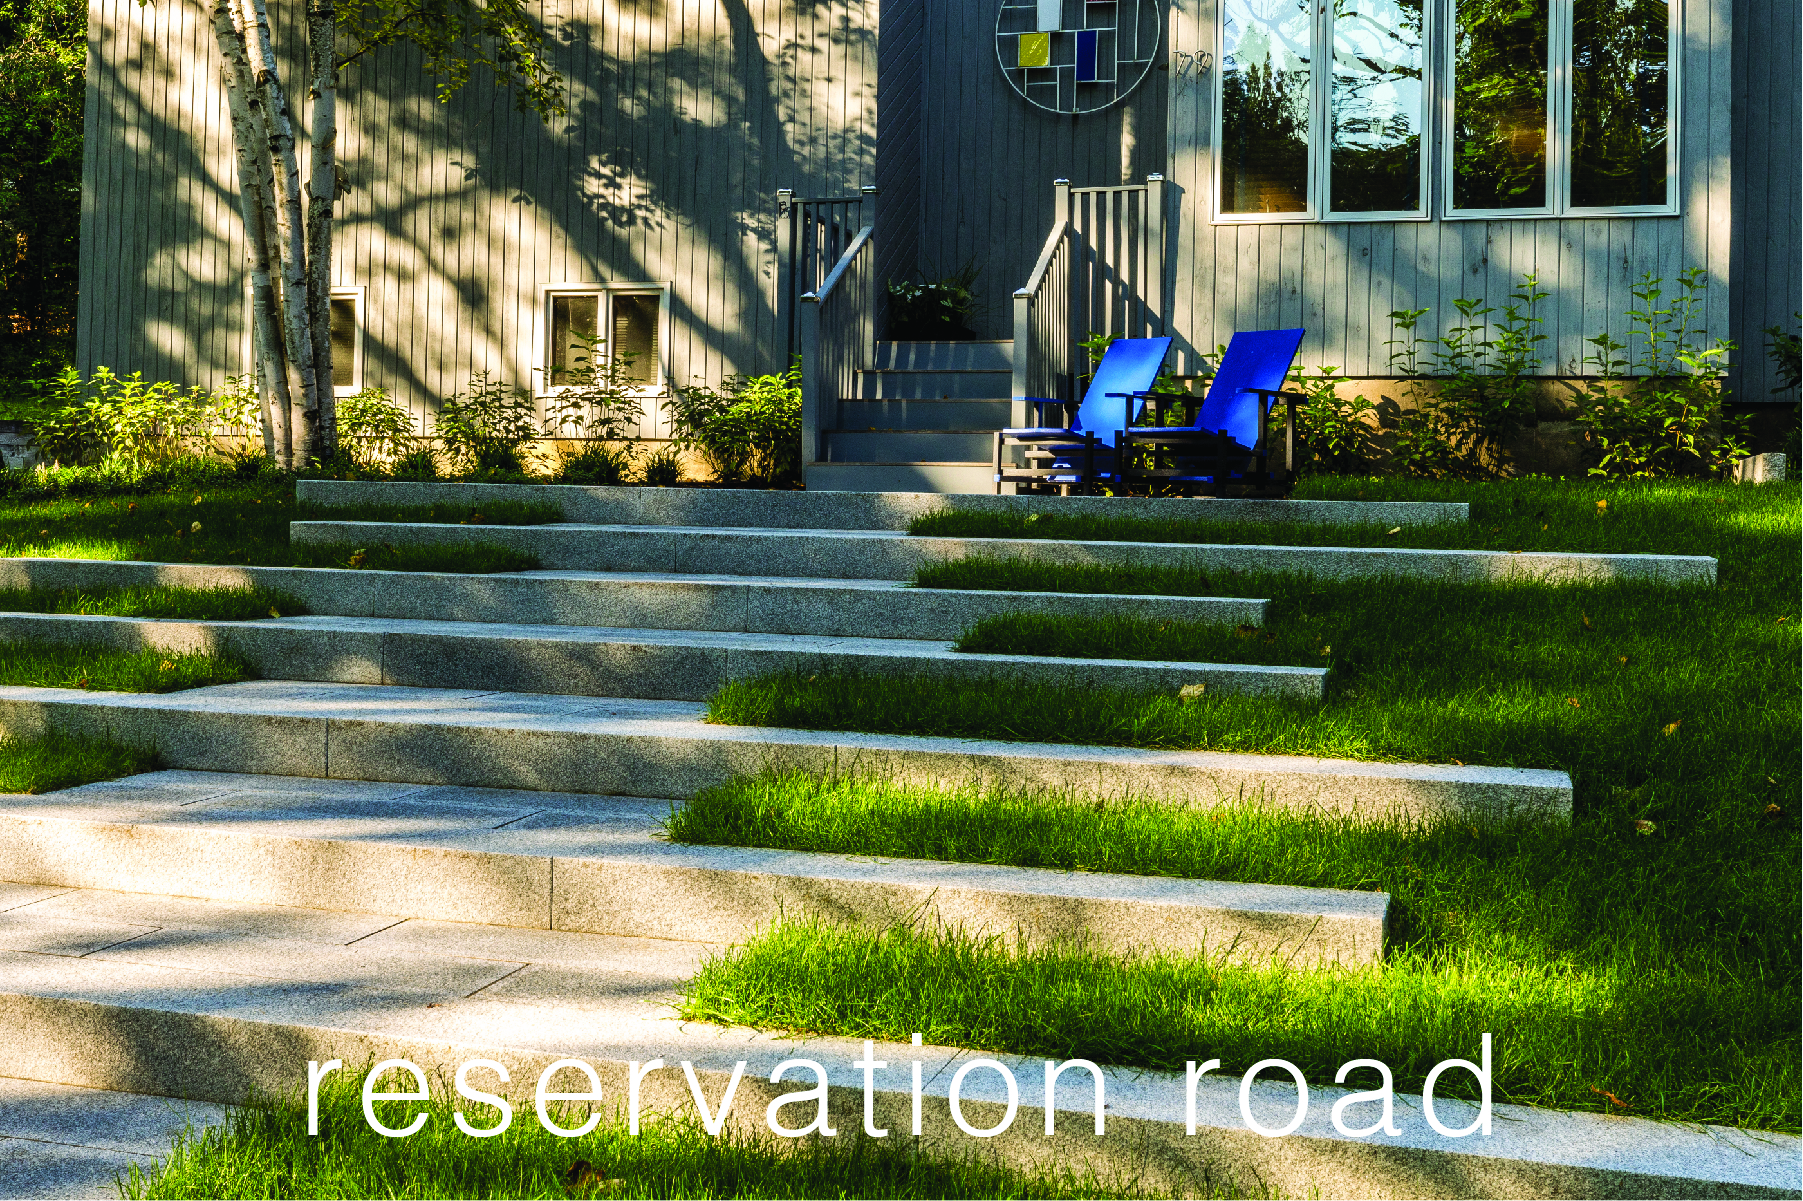 Reservation Road Portfolio Page Image with Lettering.jpg